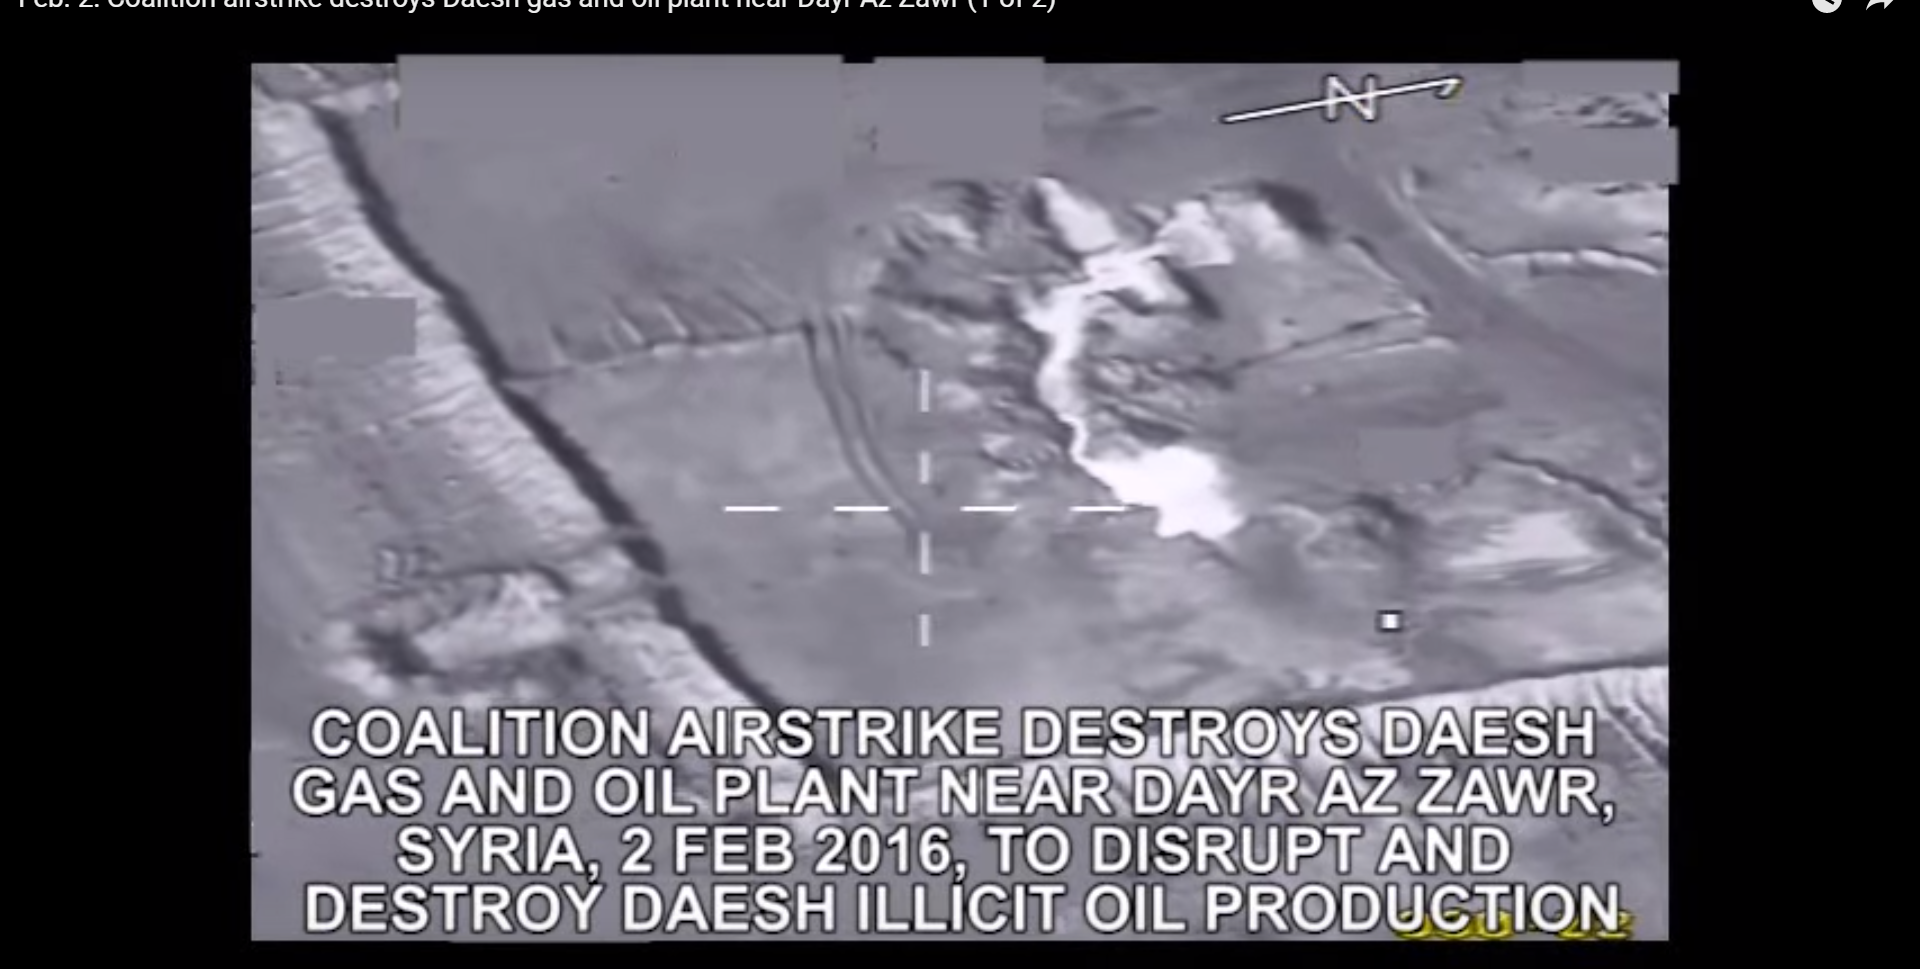 More air strikes have been targeting oil and gas plants